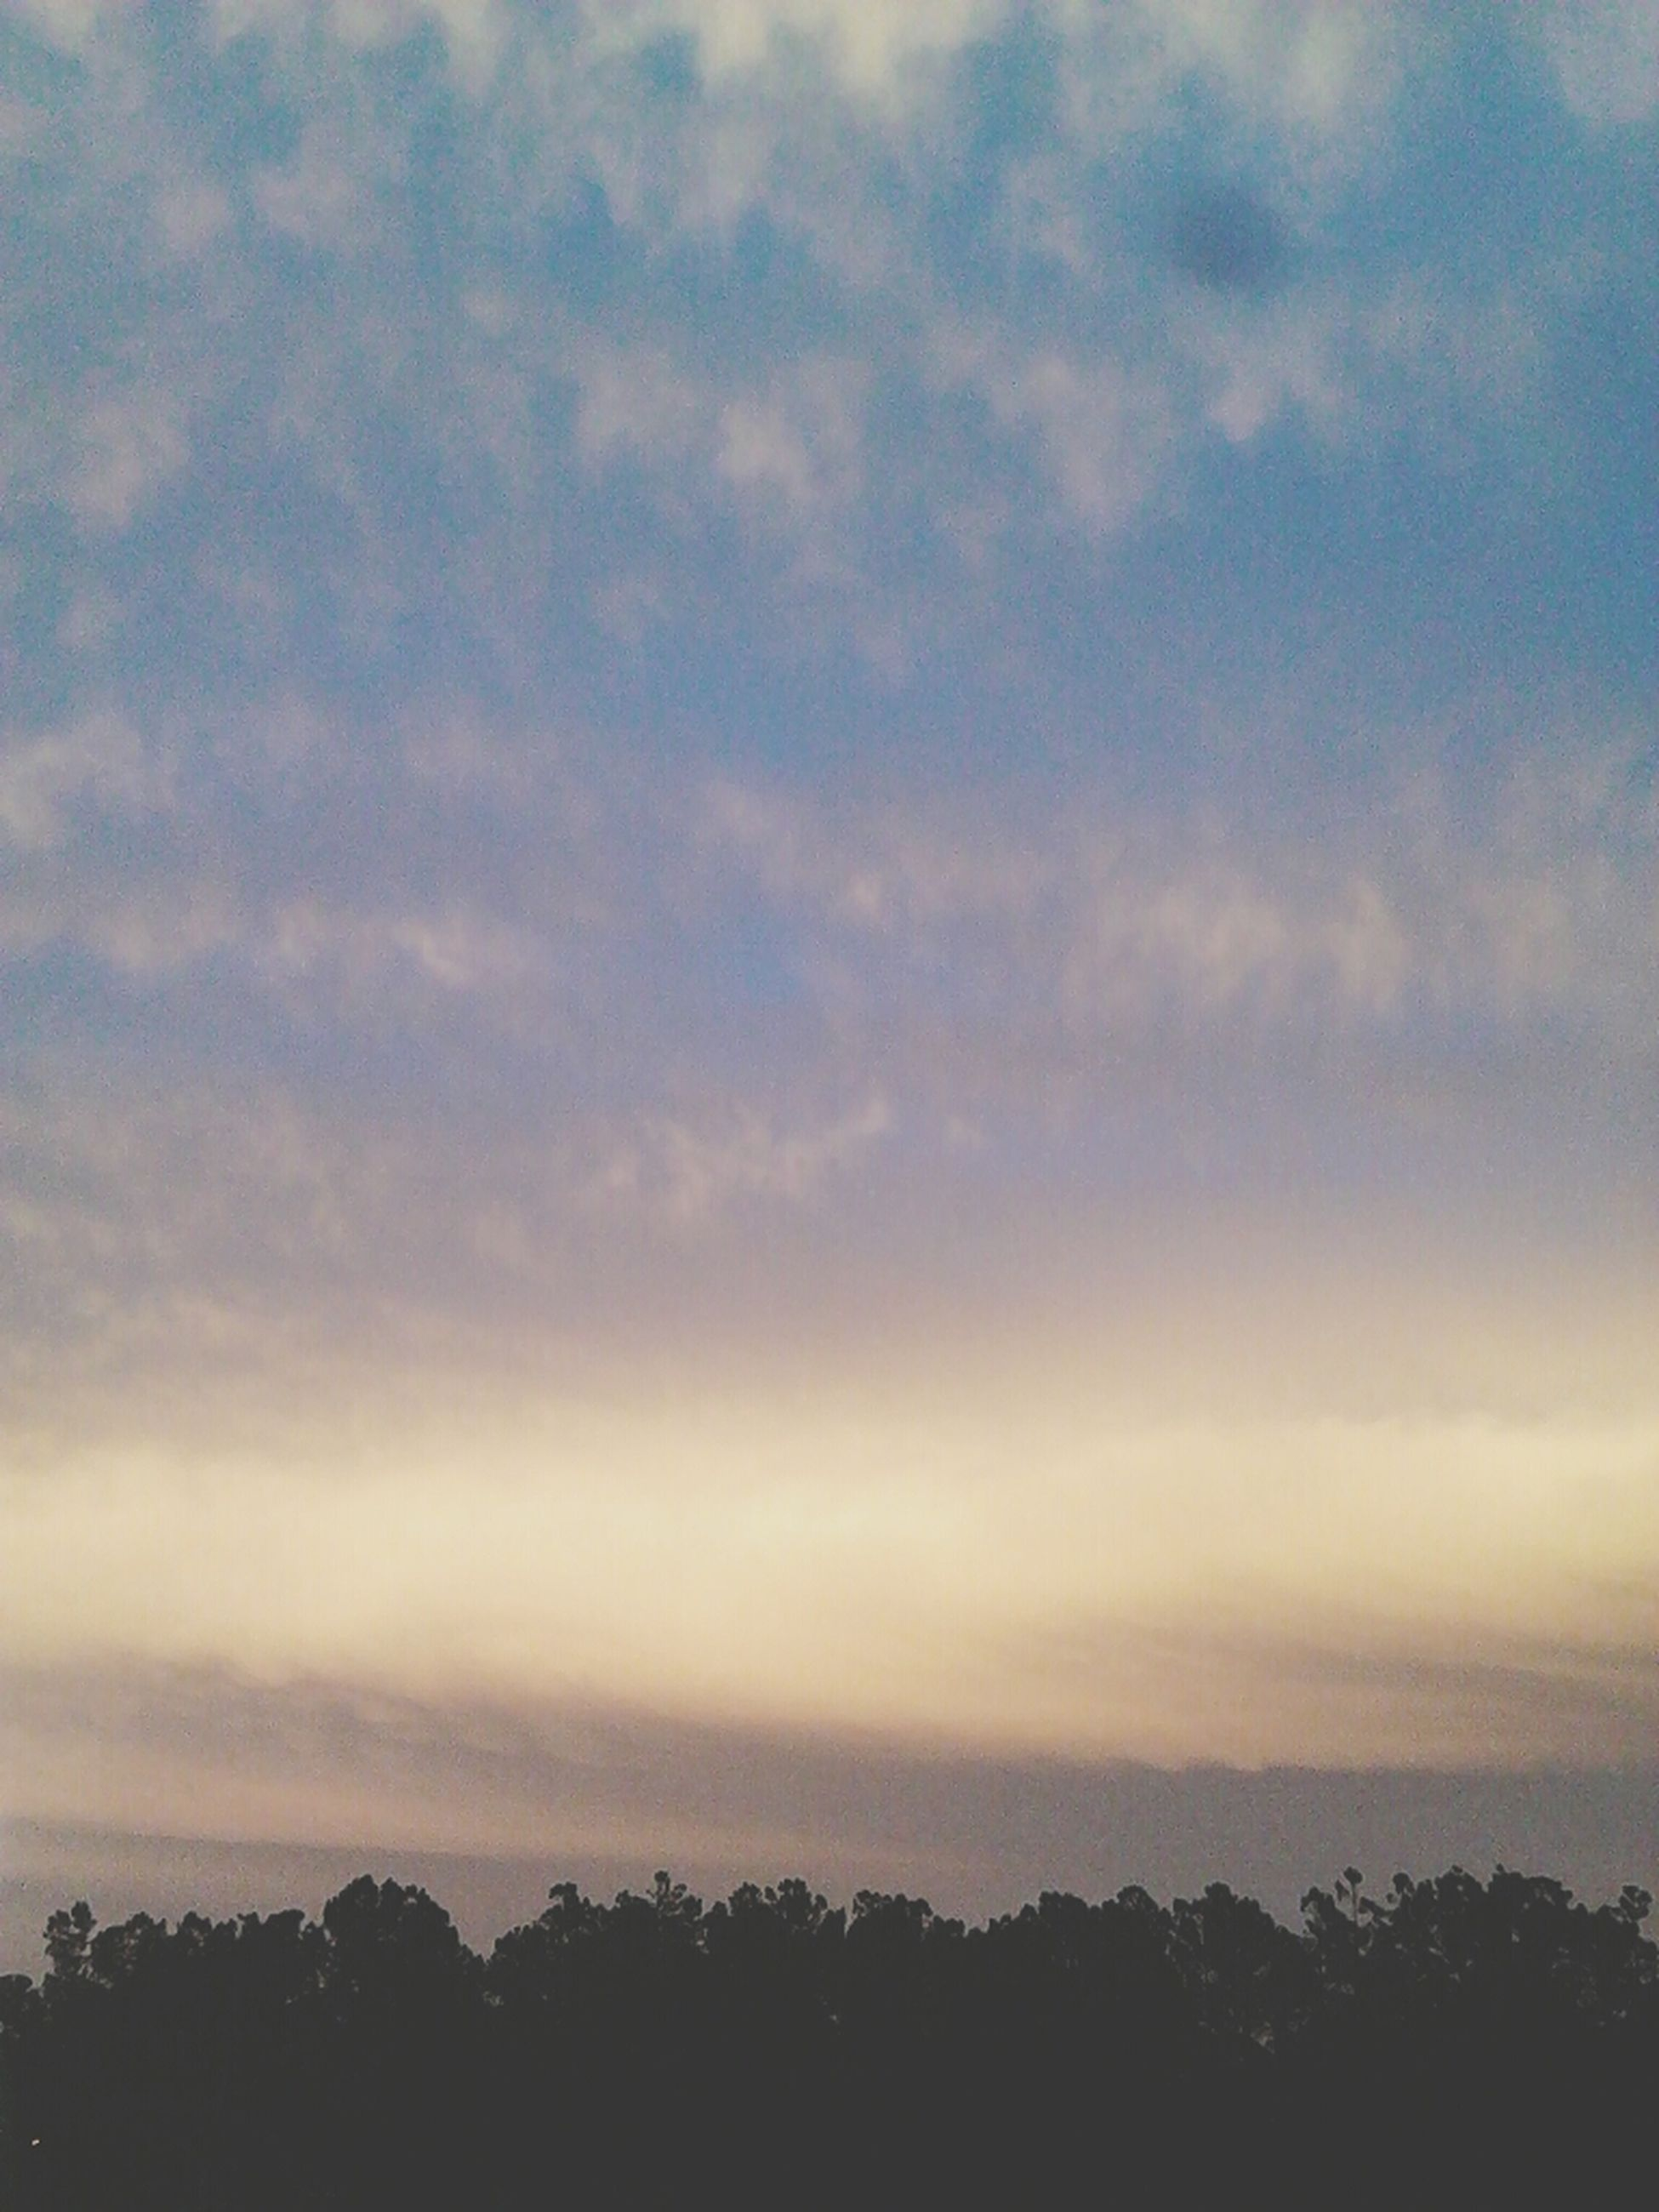 sky, tranquility, tranquil scene, scenics, beauty in nature, silhouette, tree, cloud - sky, nature, sunset, idyllic, cloudy, cloud, low angle view, outdoors, no people, dusk, weather, landscape, non-urban scene